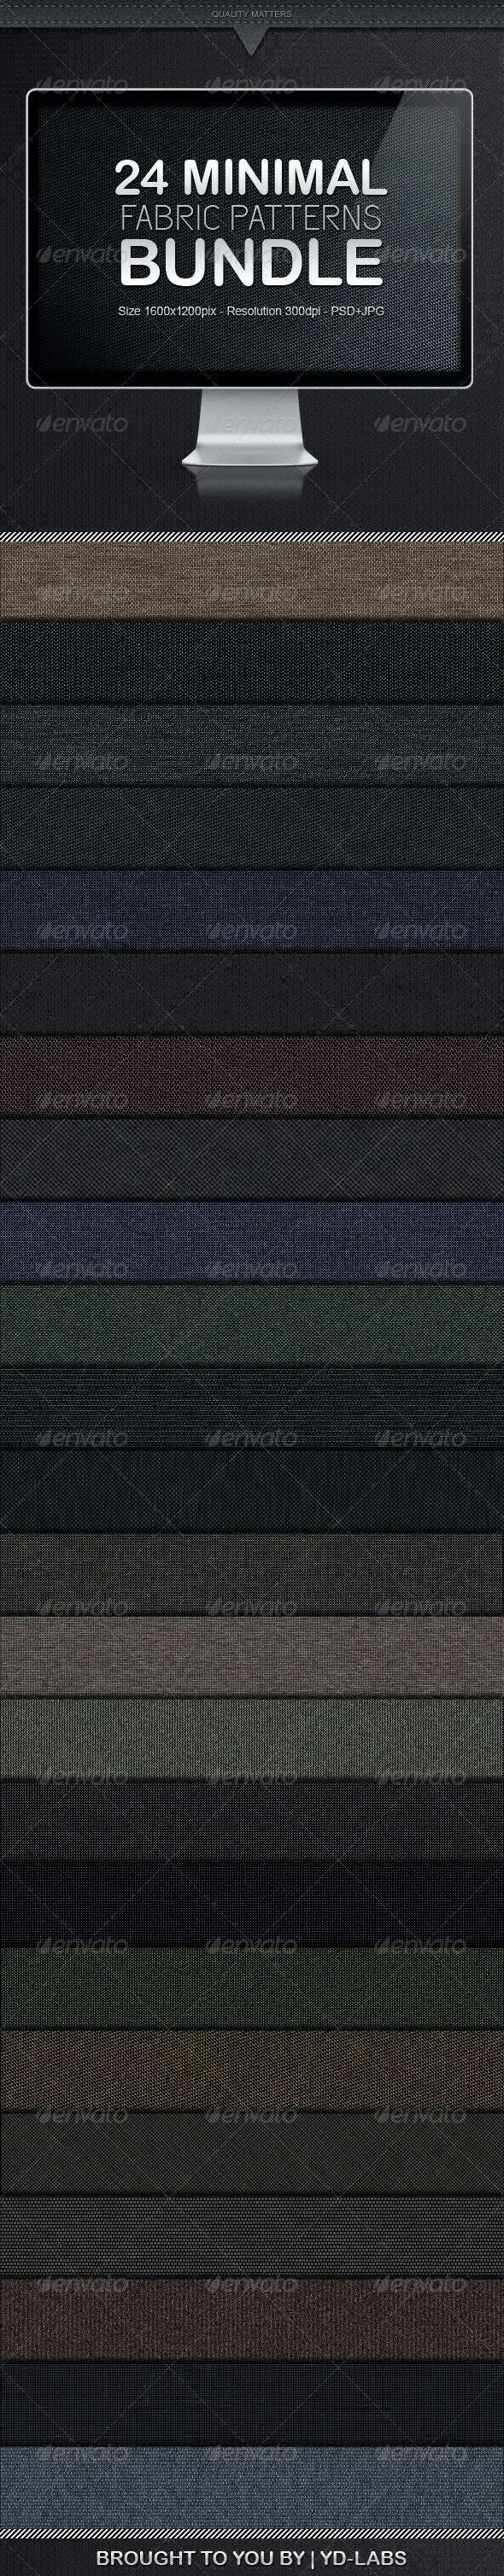 24 Minimal Fabric Patterns Bundle - Patterns Backgrounds